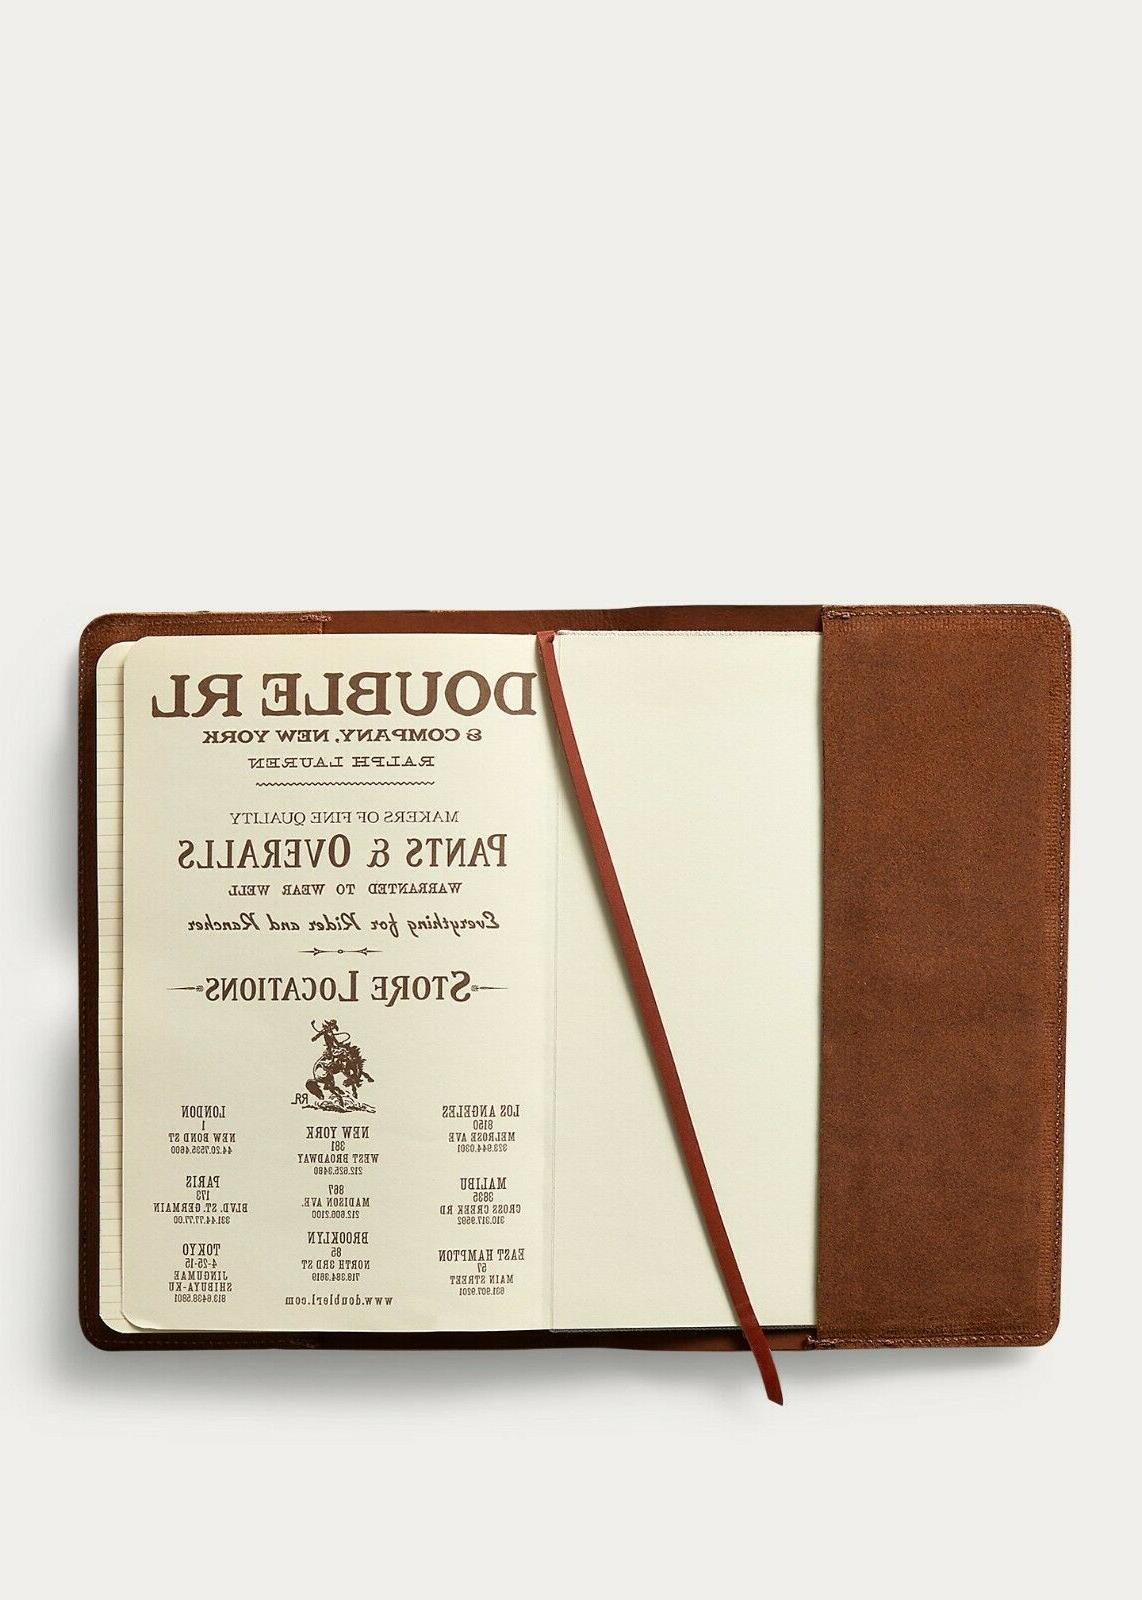 RRL Ralph Lauren in Roughout Leather Notebook LAST ONE